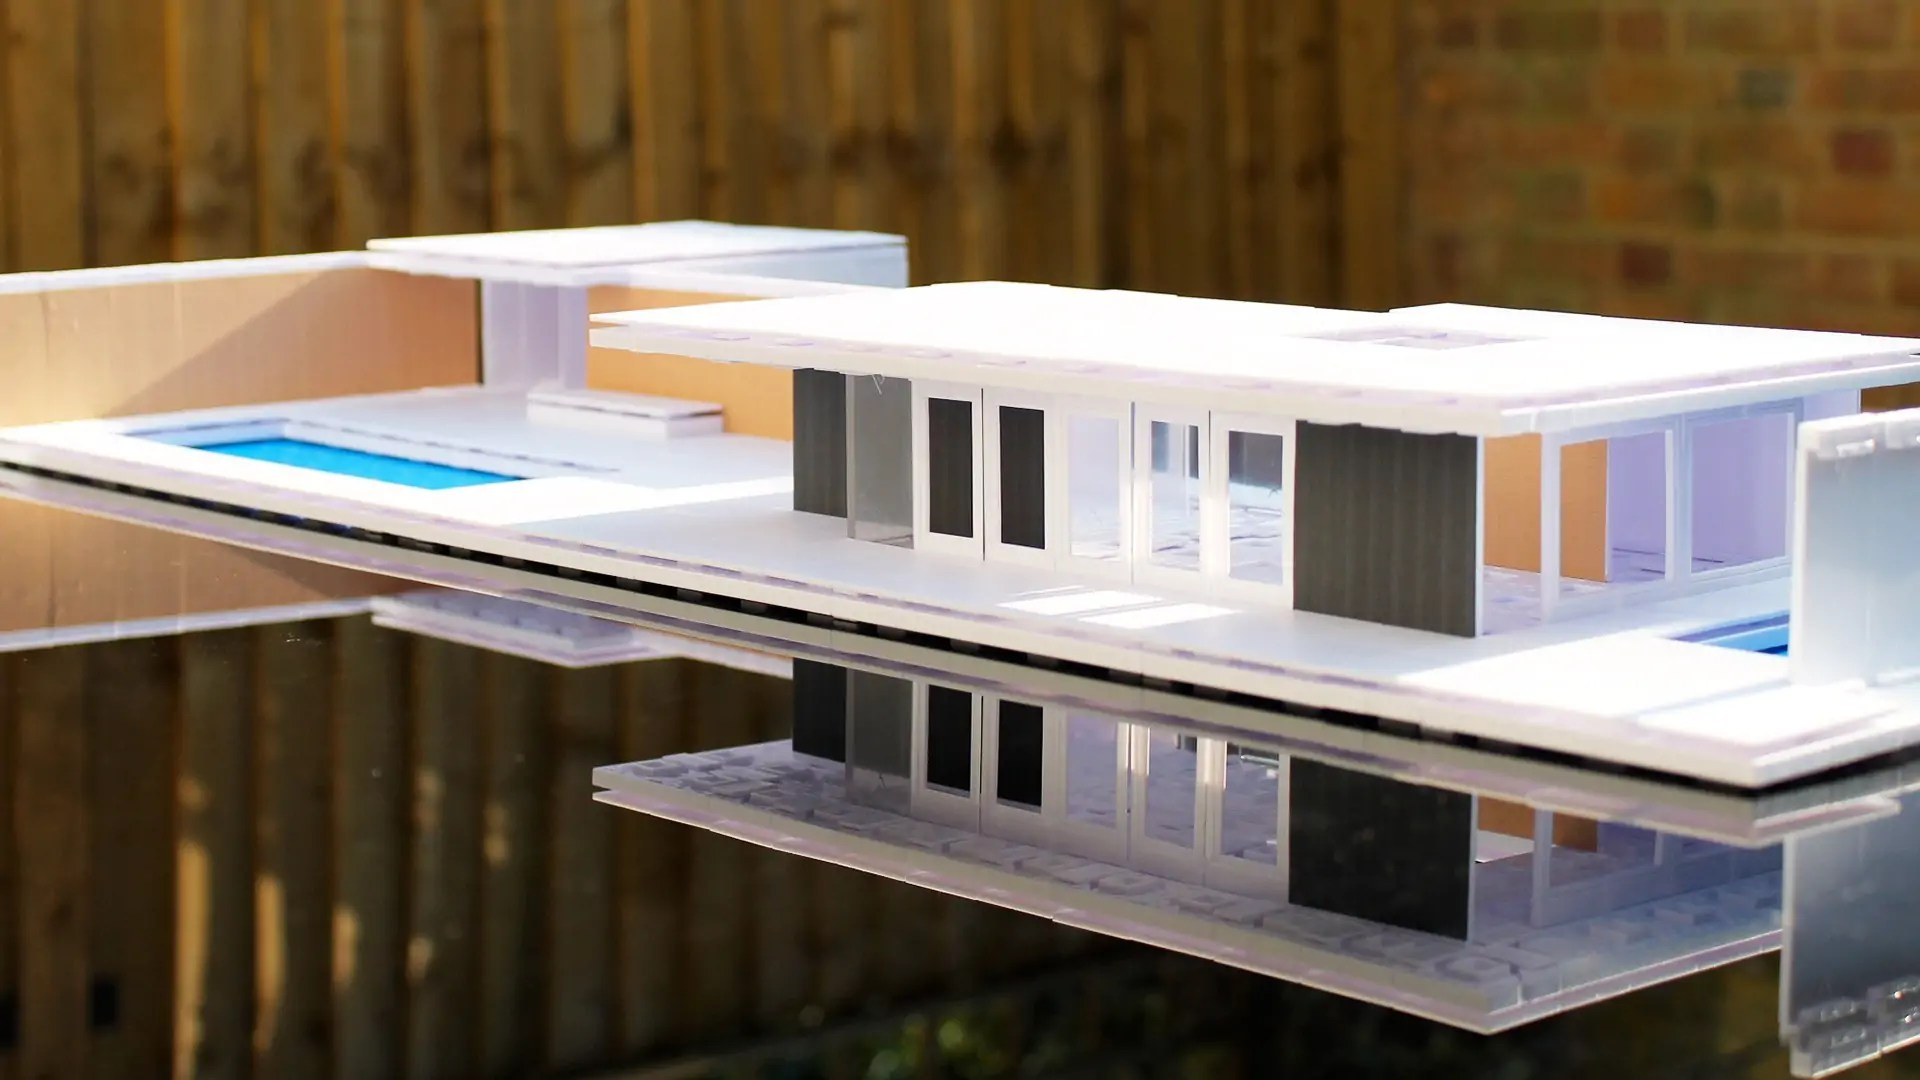 Architectural Model Kits Arckit Brings Real World Architecture Components To A